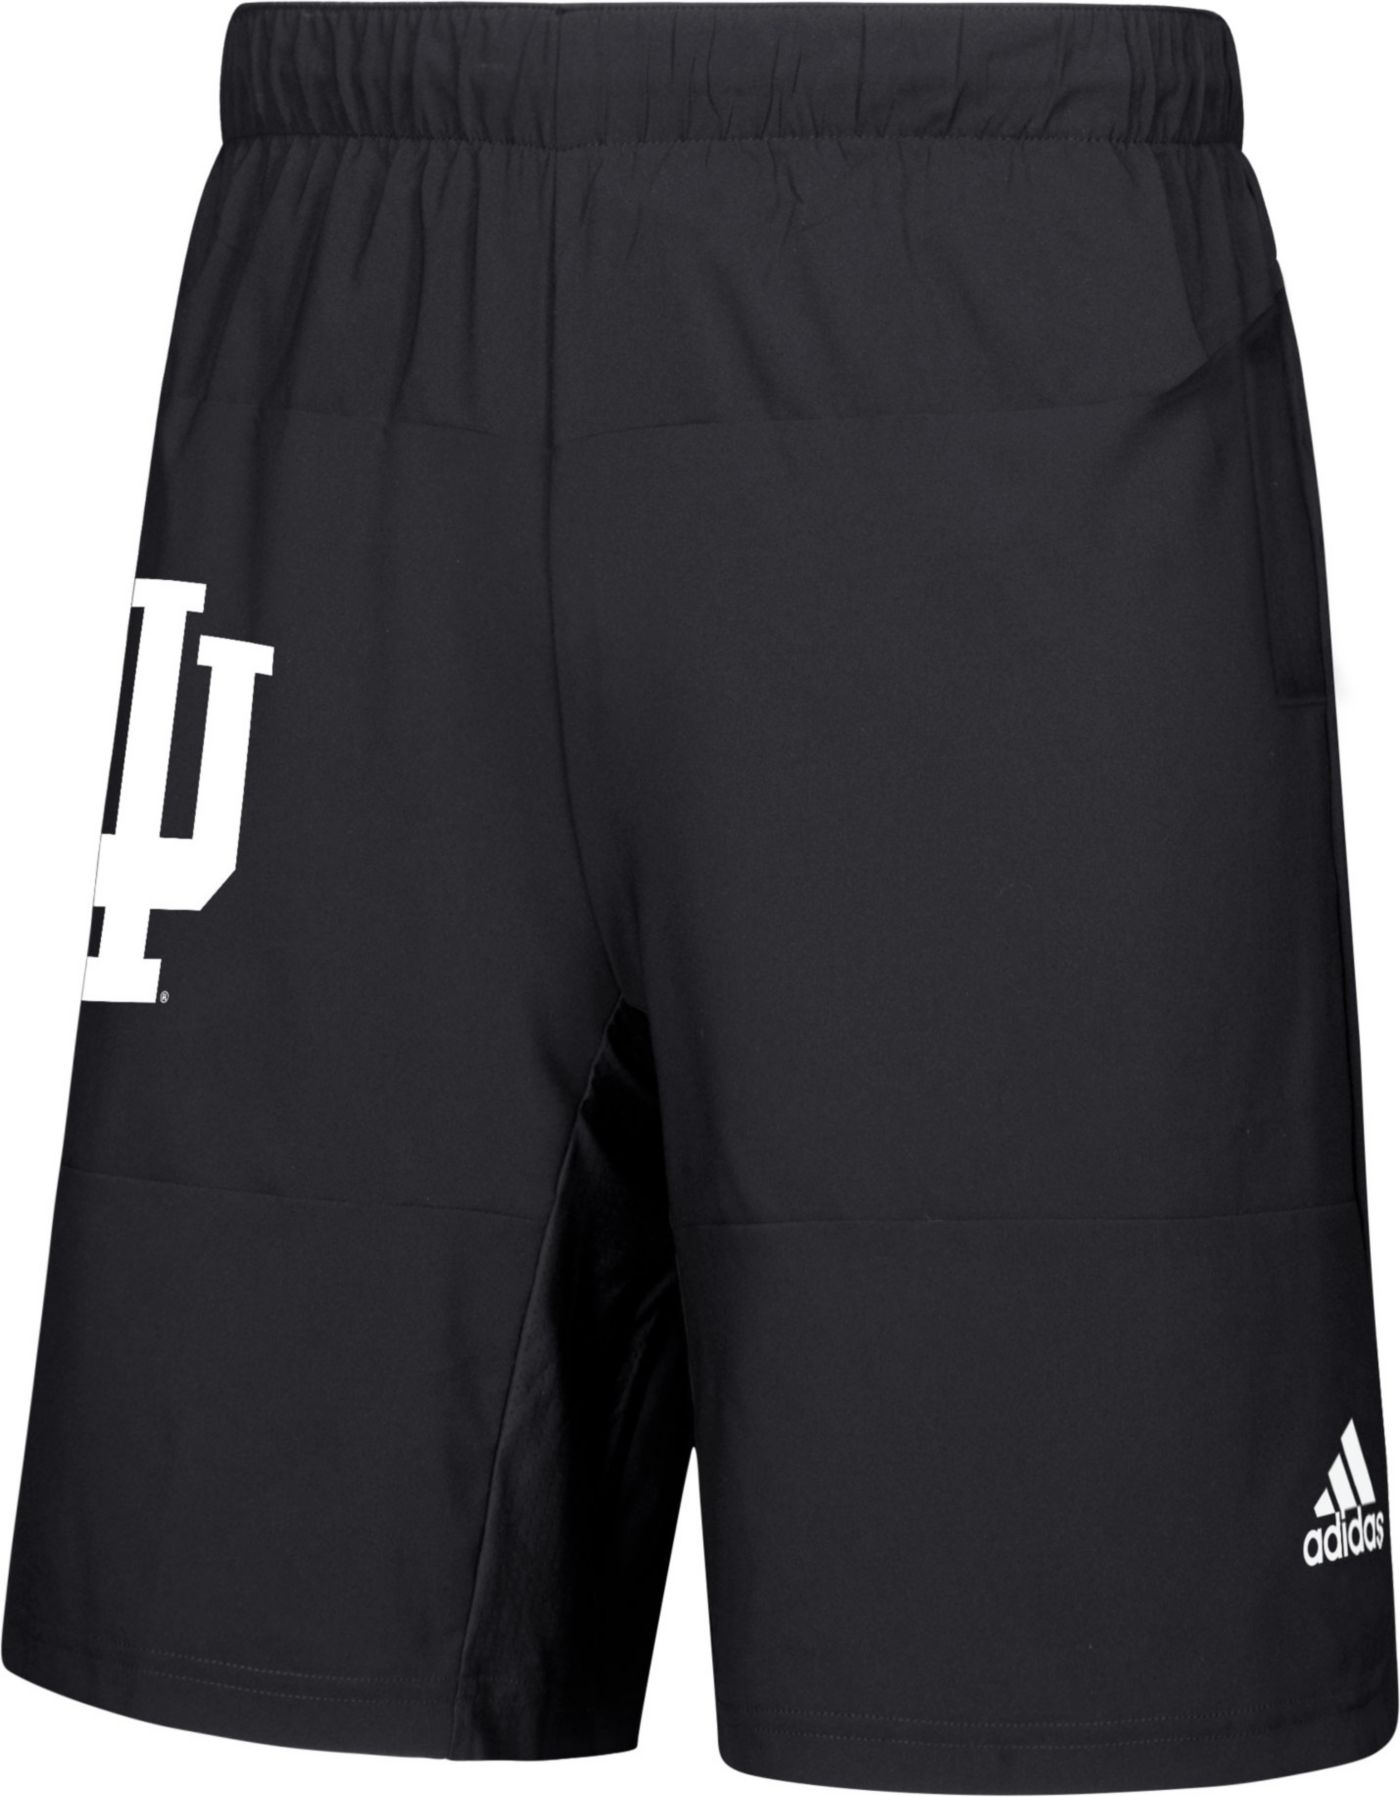 adidas Men's Indiana Hoosiers Sideline Game Mode Woven Black Shorts